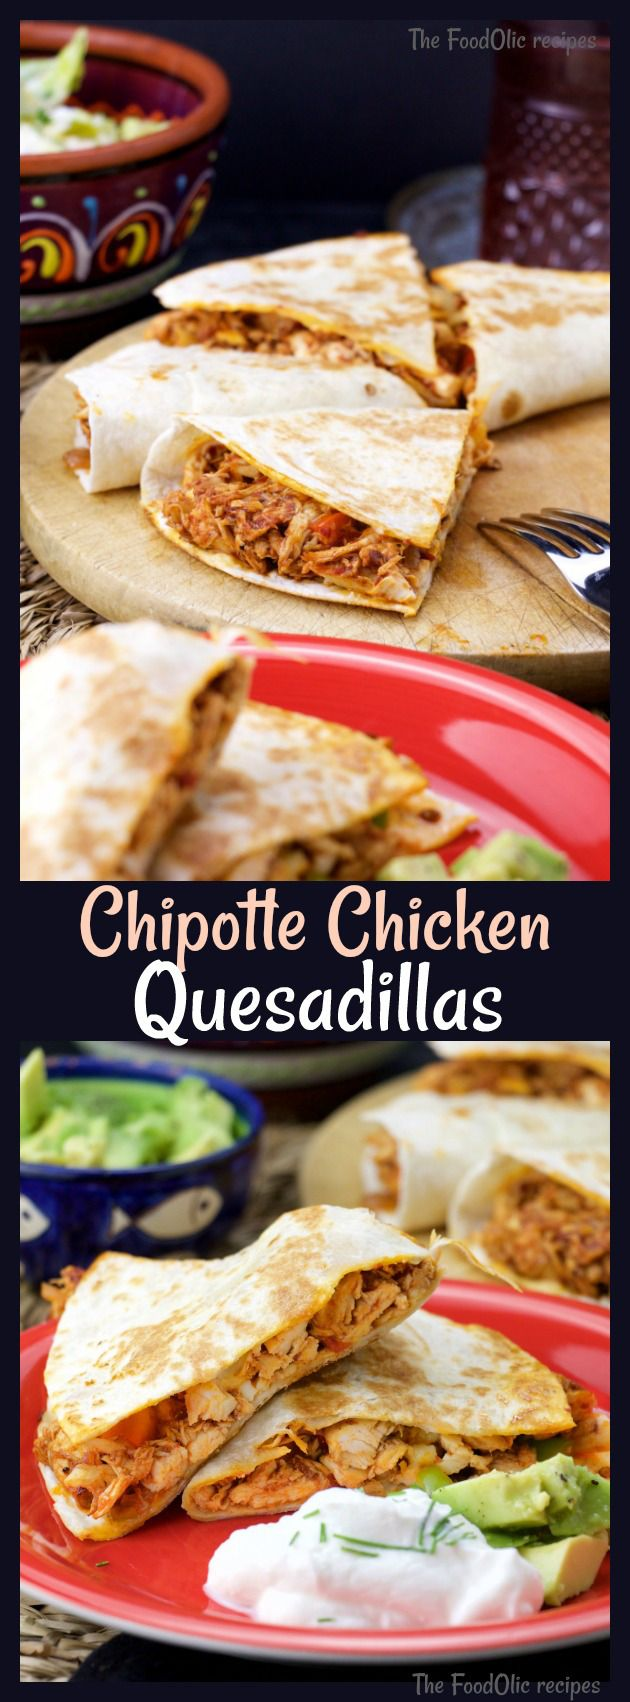 Easy breezy Chipotle chicken quesadillas made with wheat tortilla and cheddar, served with avocado and sour cream. #quesadillas #mexican #chicken